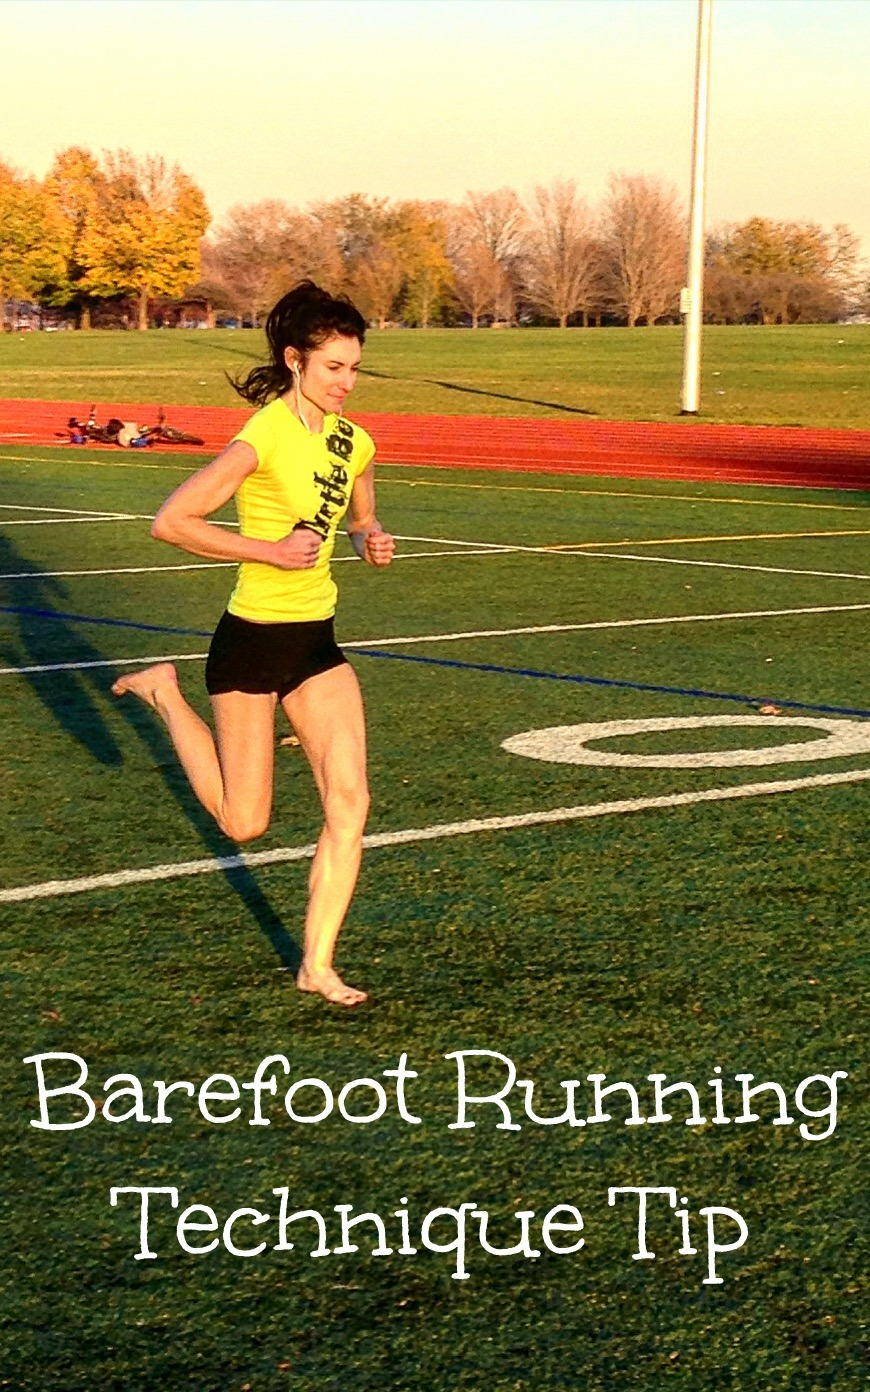 Barefoot Running Technique Tip